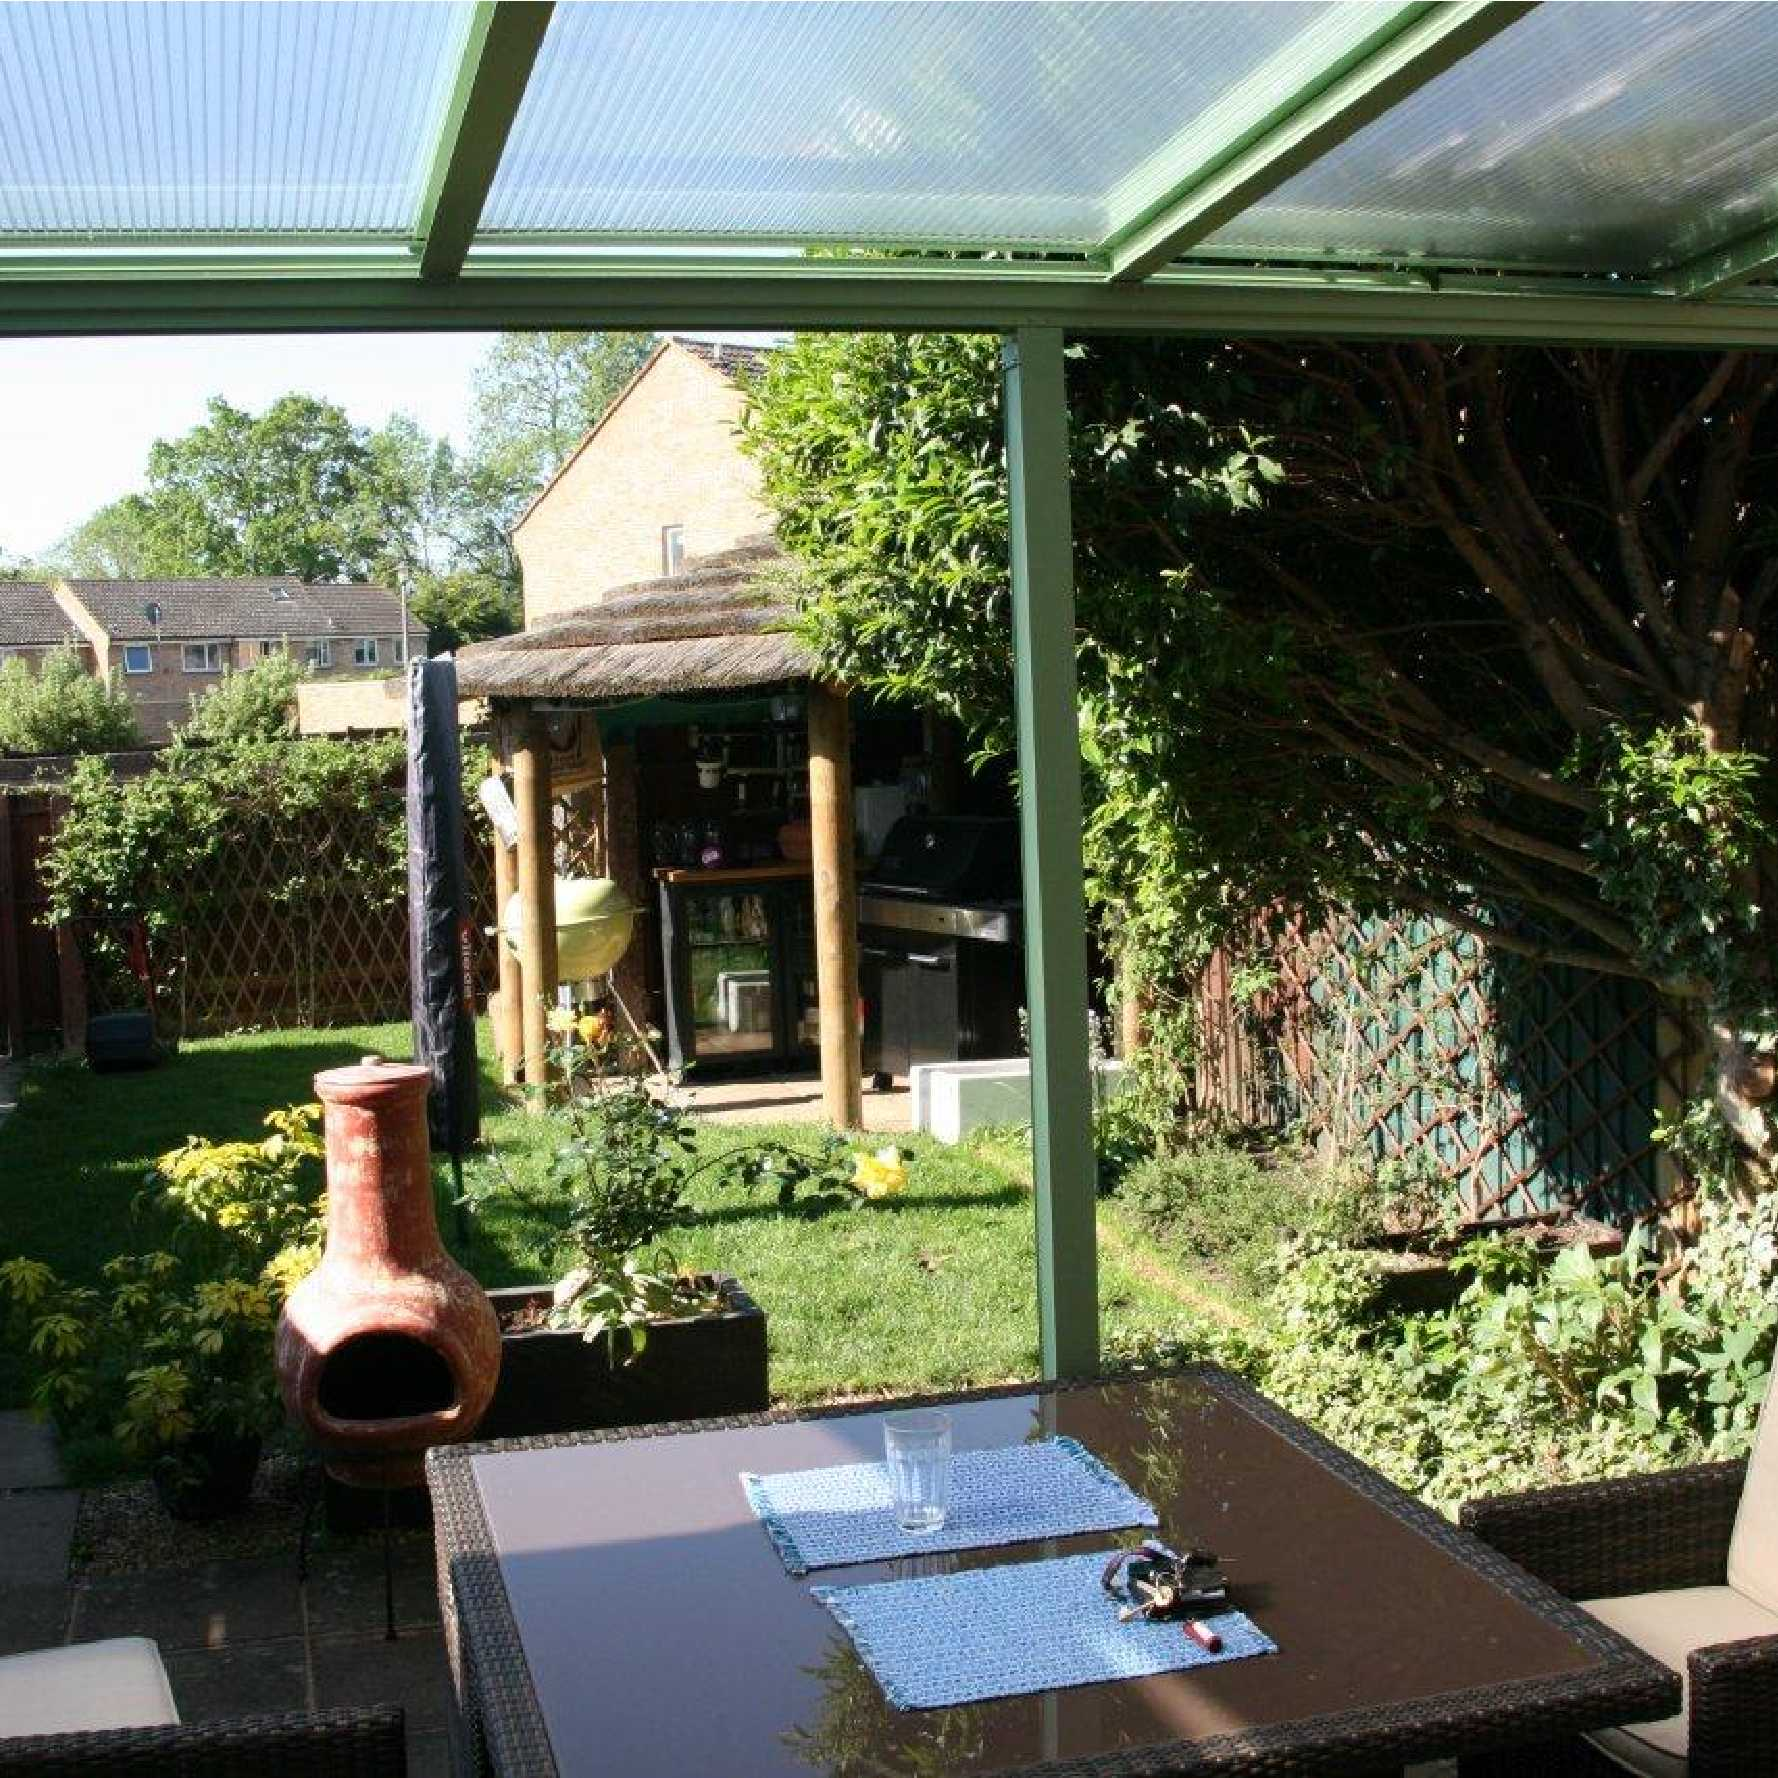 Affordable Omega Smart Lean-To Canopy with 16mm Polycarbonate Glazing - 2.1m (W) x 1.5m (P), (2) Supporting Posts